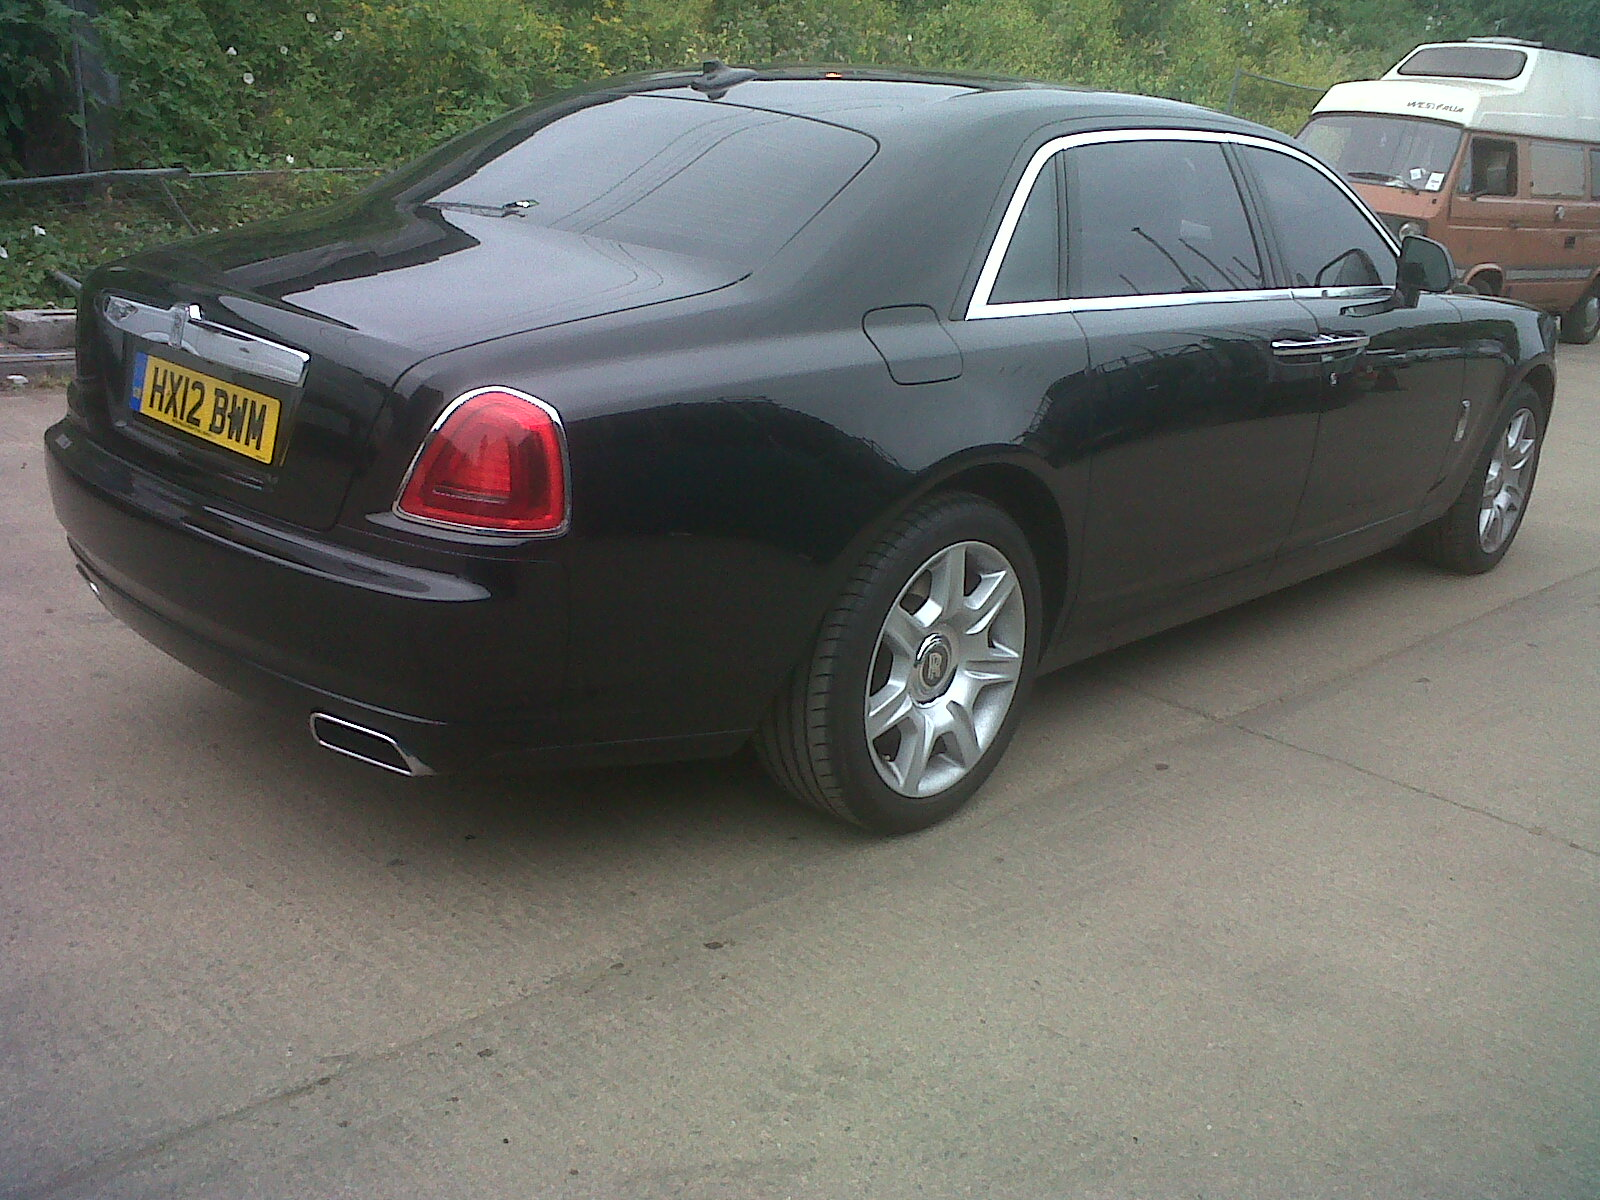 #rollsroyce #heathrow #driver #cartints #uber